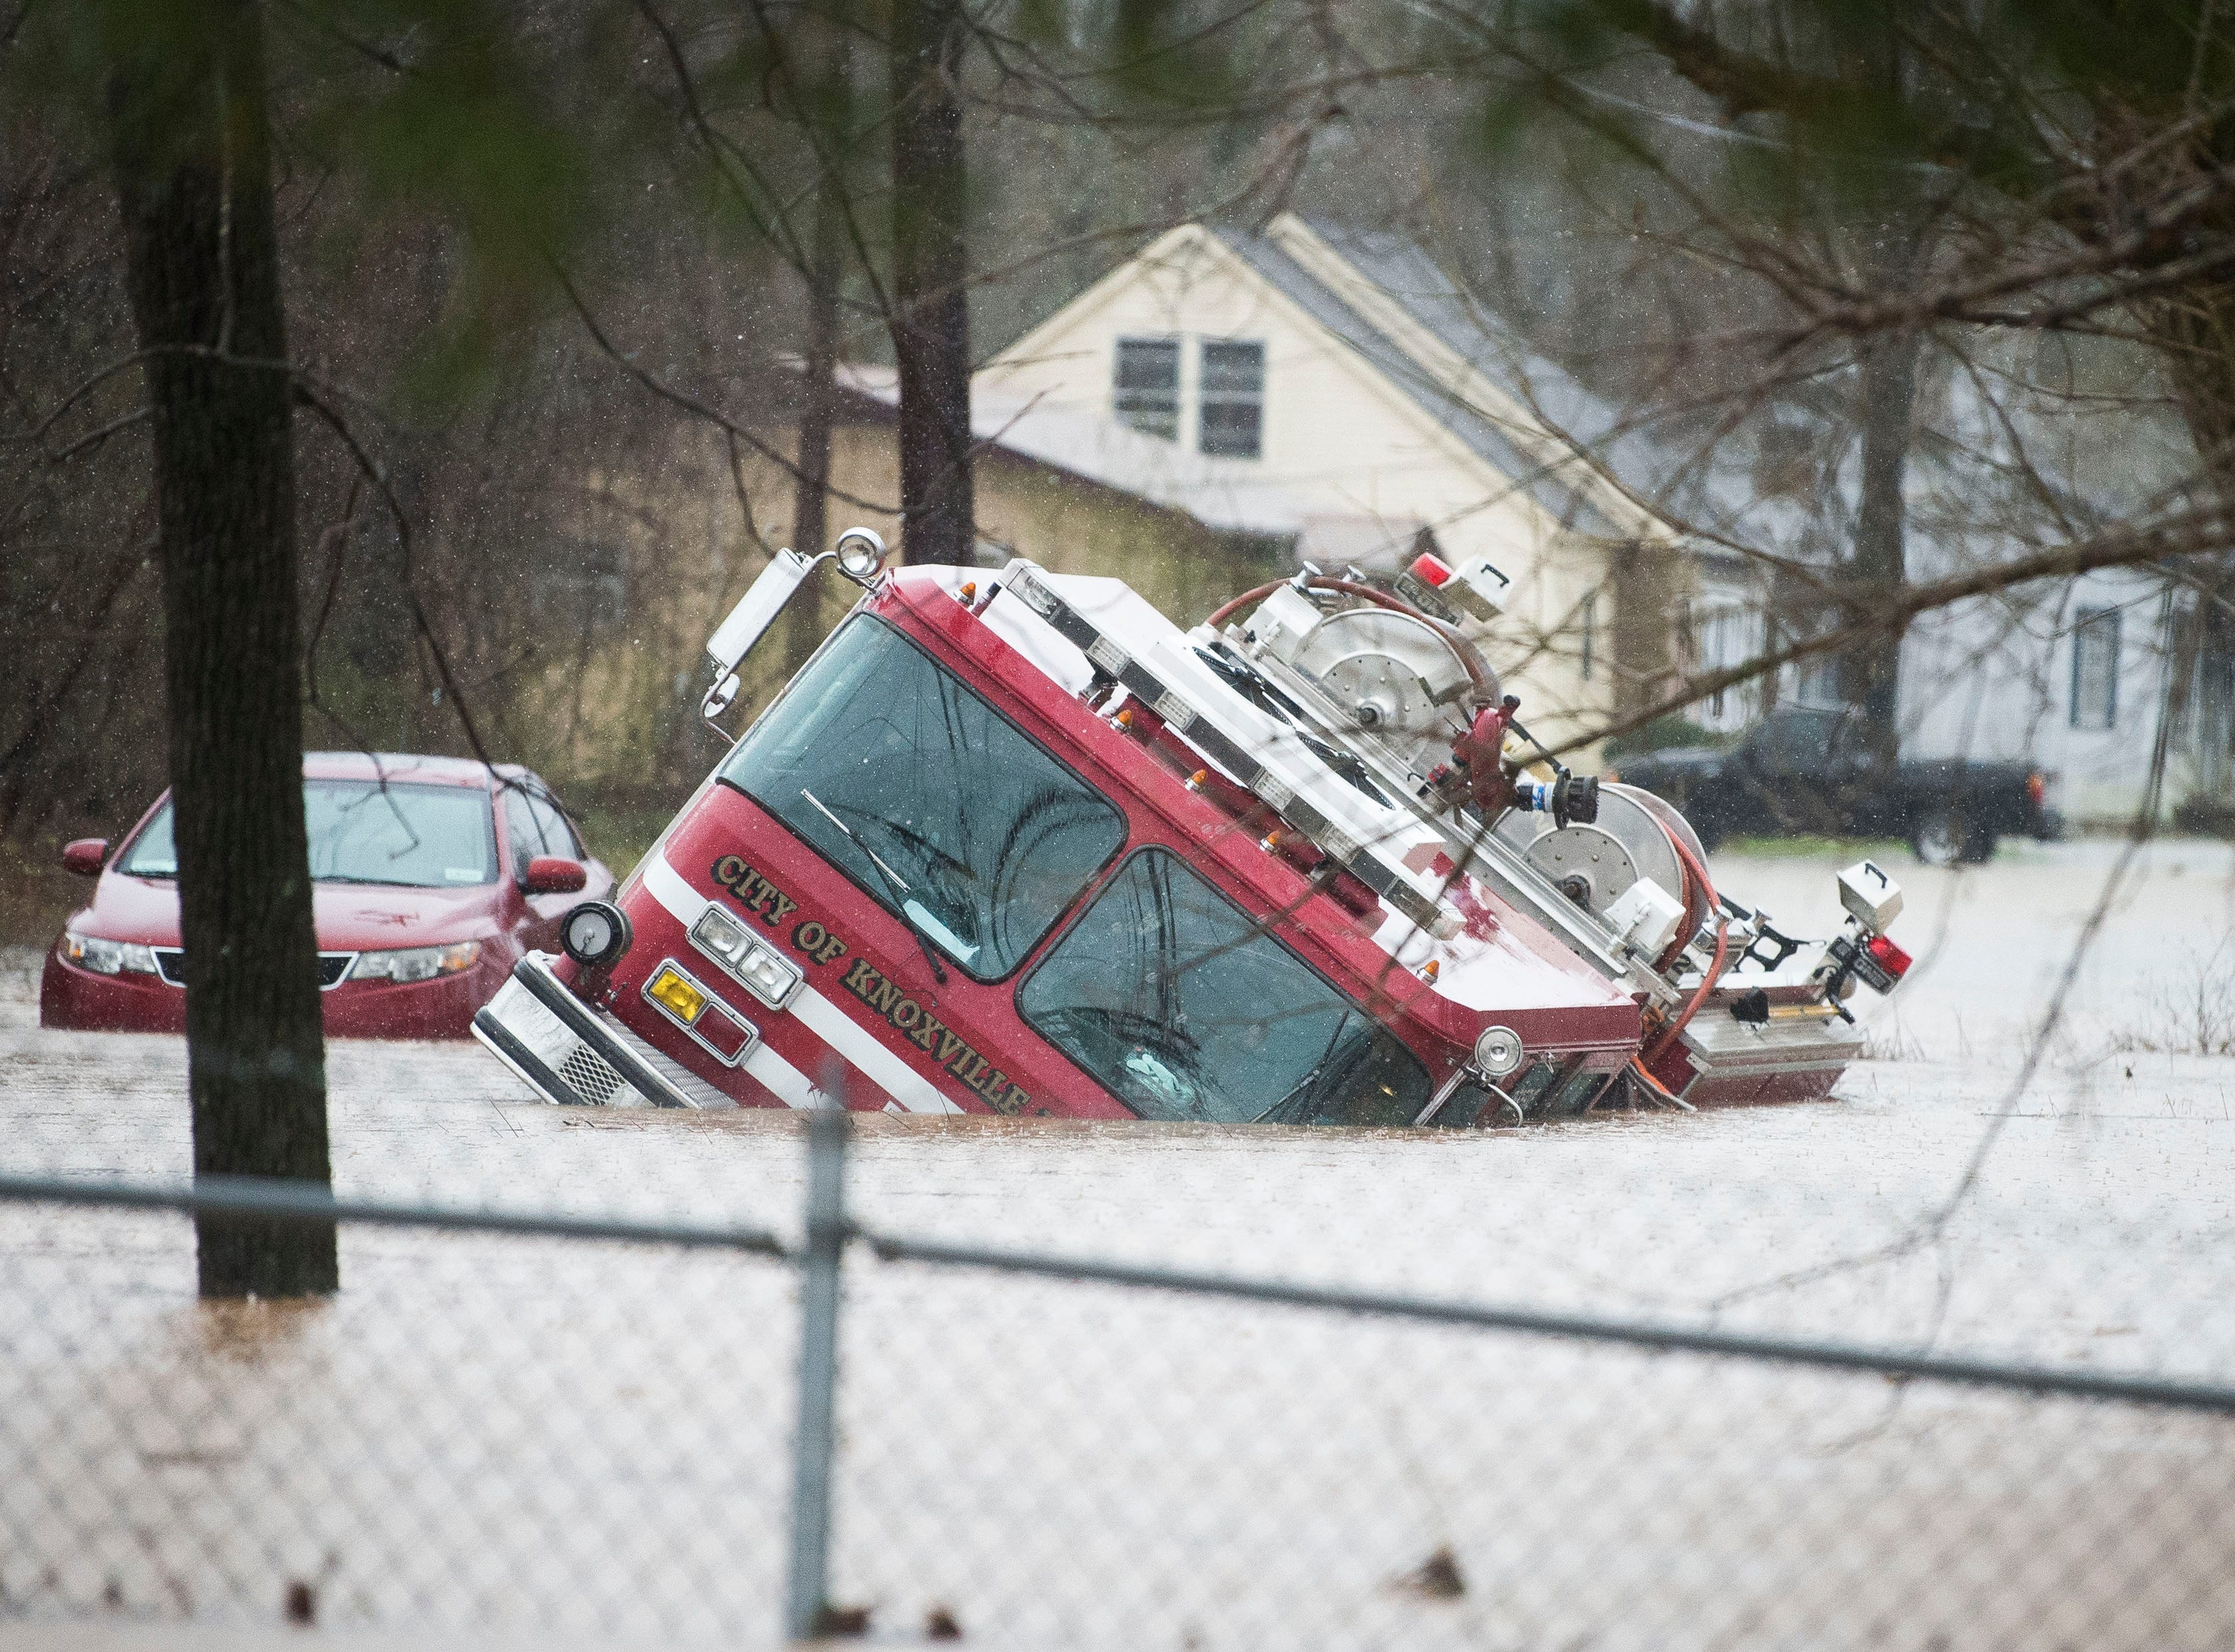 A firetruck is overtaken by flood water near the Kroger in Fountain City Saturday, Feb. 23, 2019. The Knoxville area could see between 2 and 3 inches through the weekend.